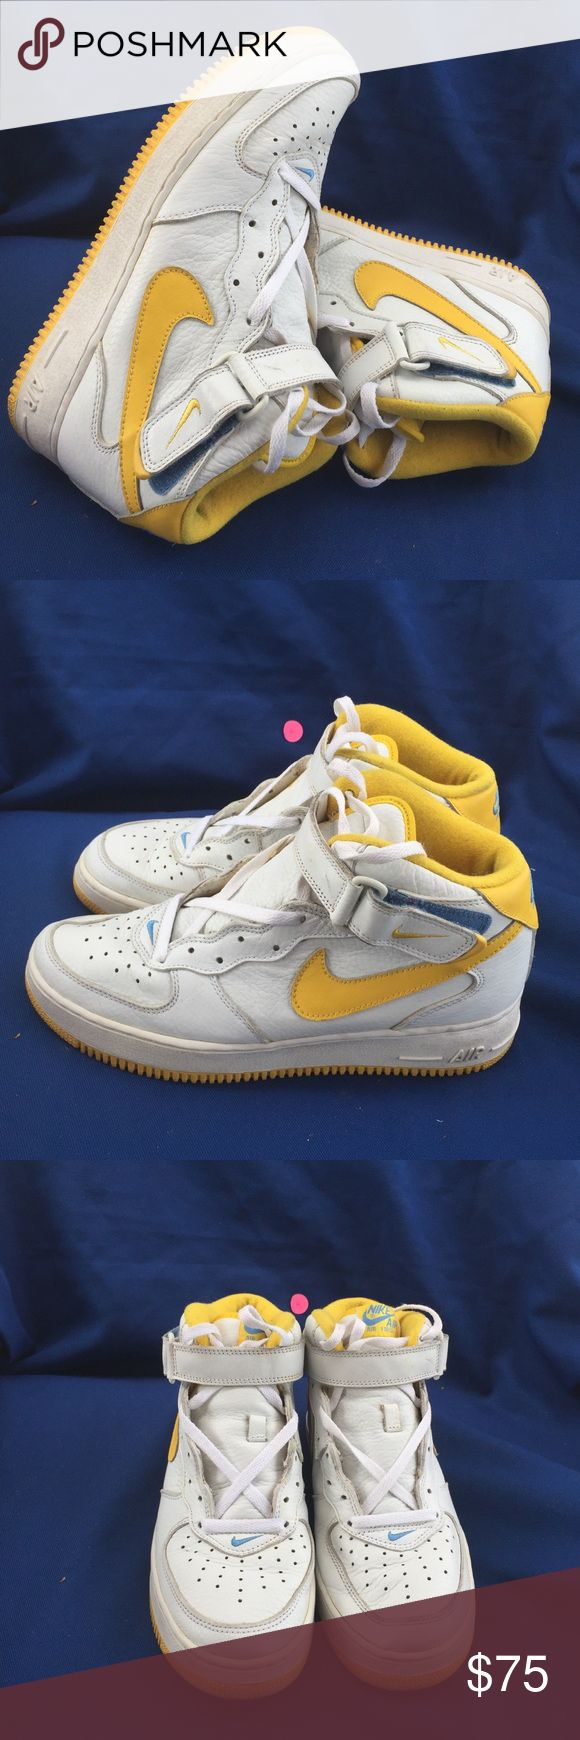 Nike Air Force one Mid SC size 10 Gently used Nike Shoes Sneakers